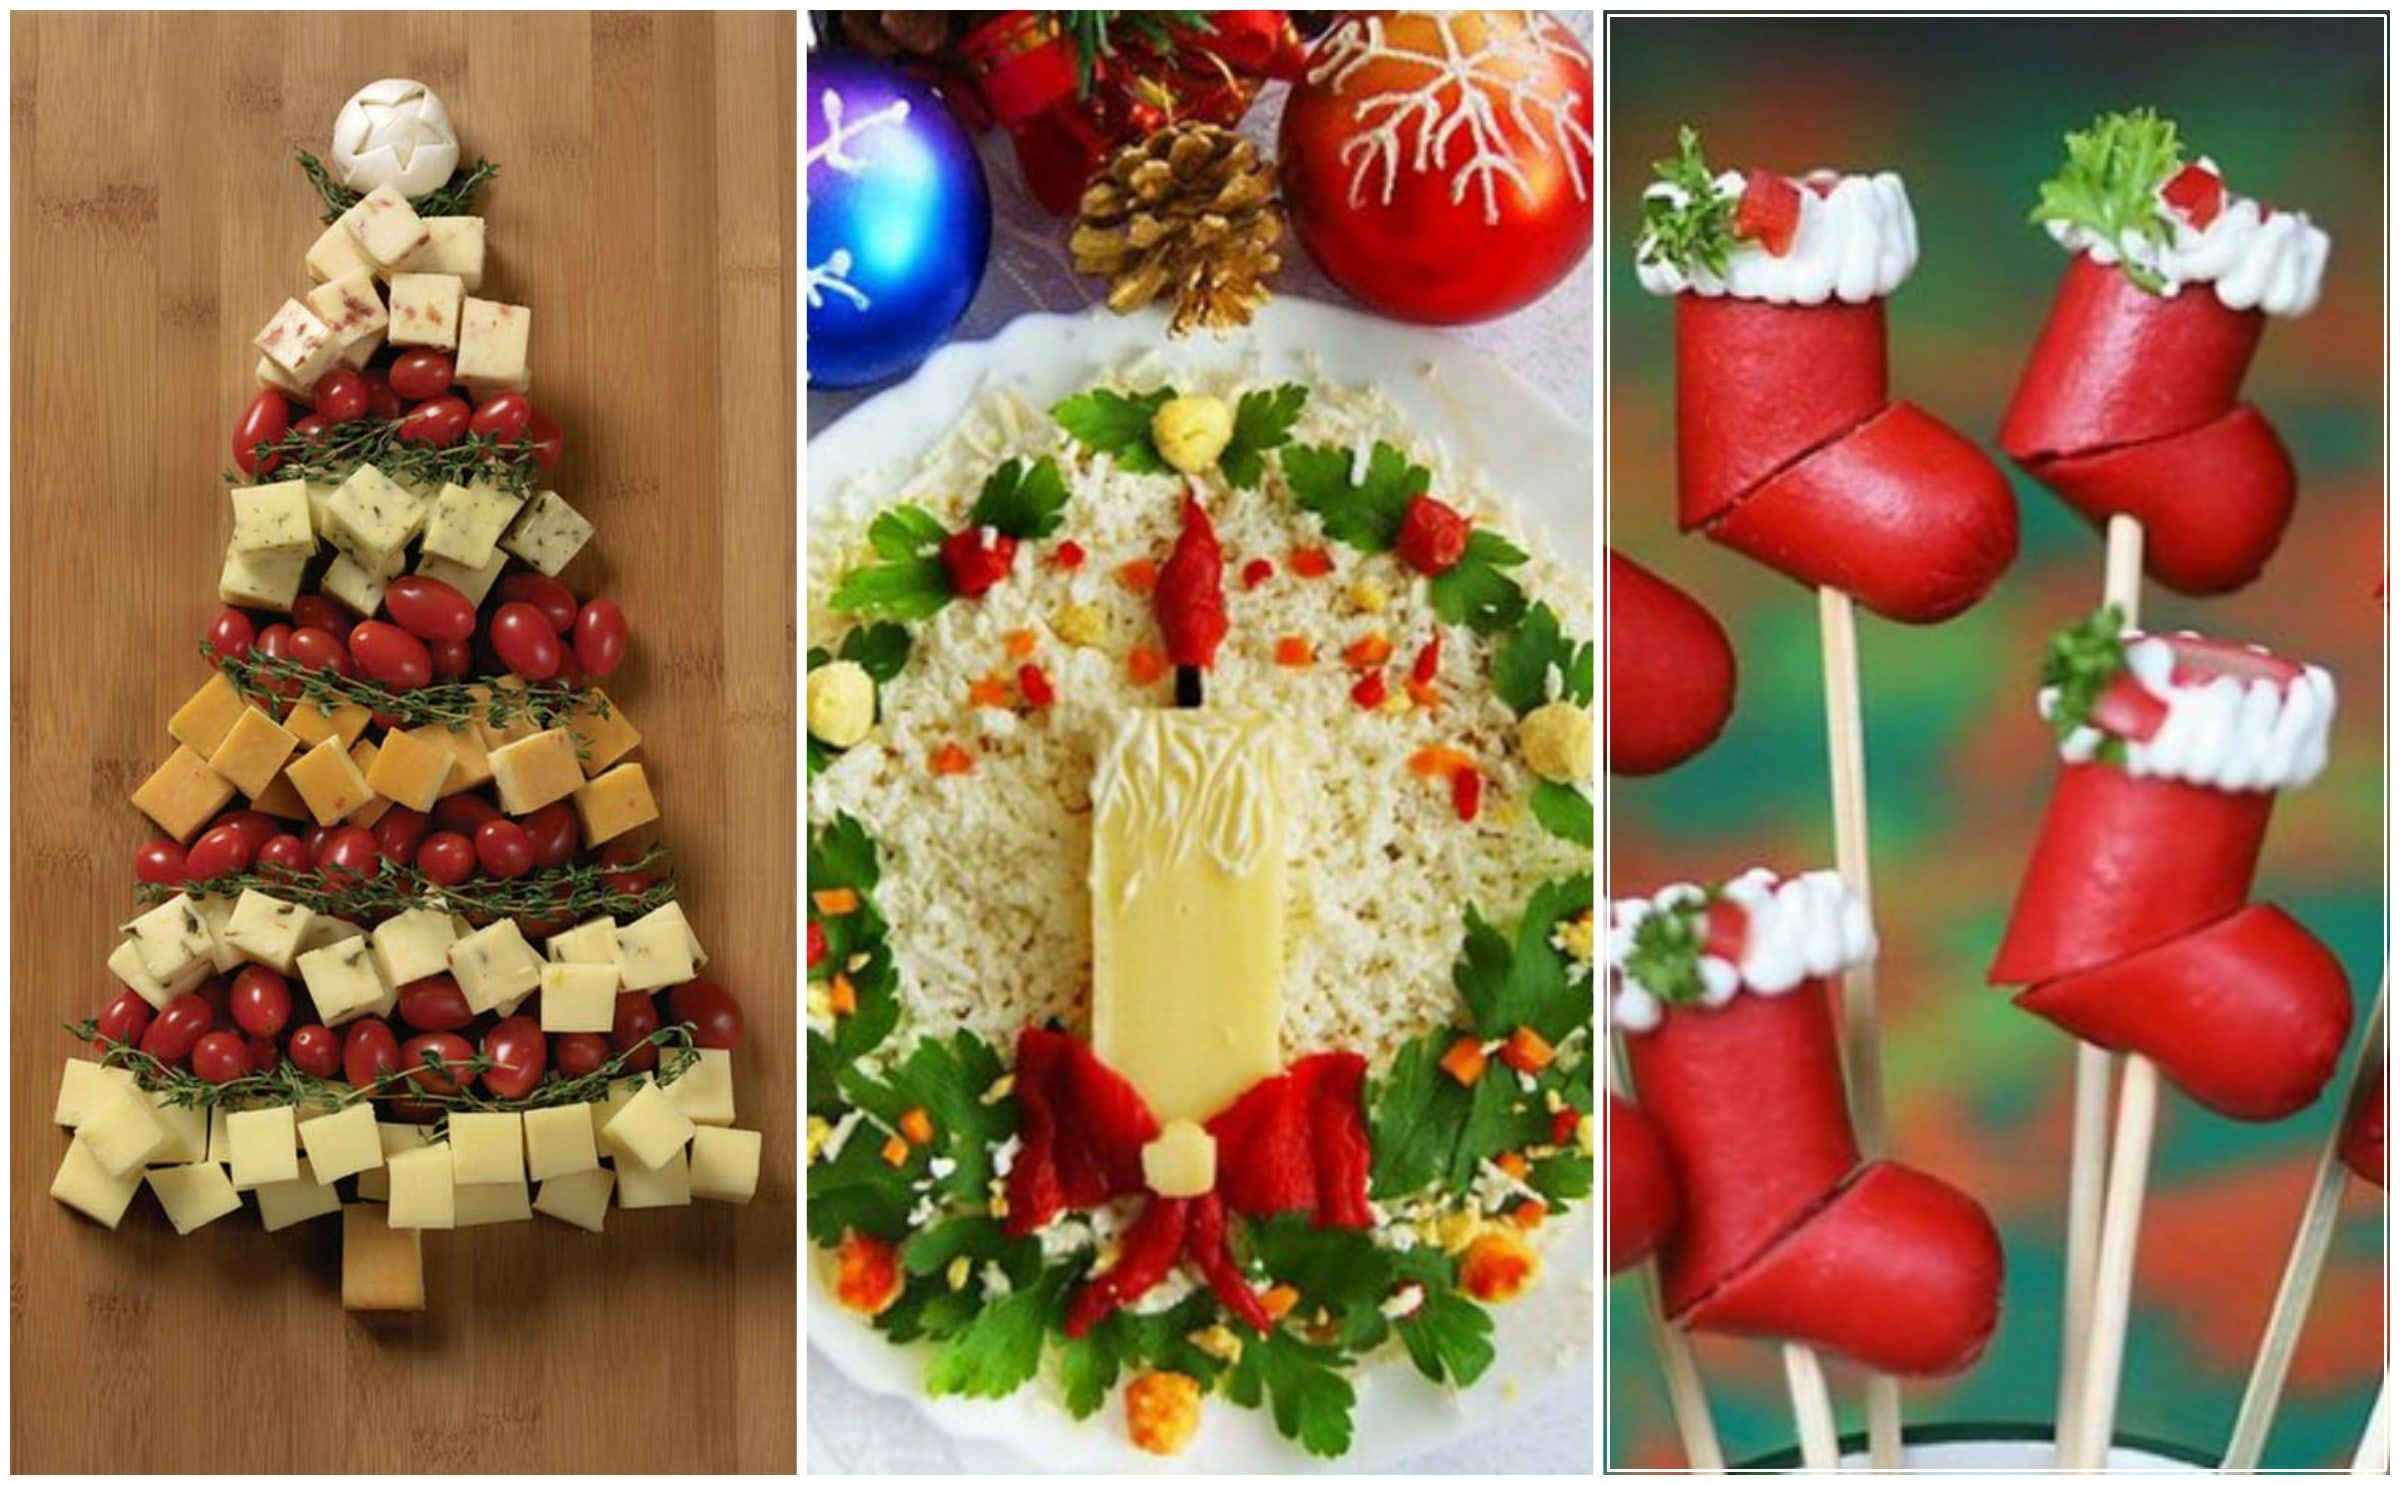 20 Stylish And Most Creative Christmas Food Decorating Ideas | Food ...